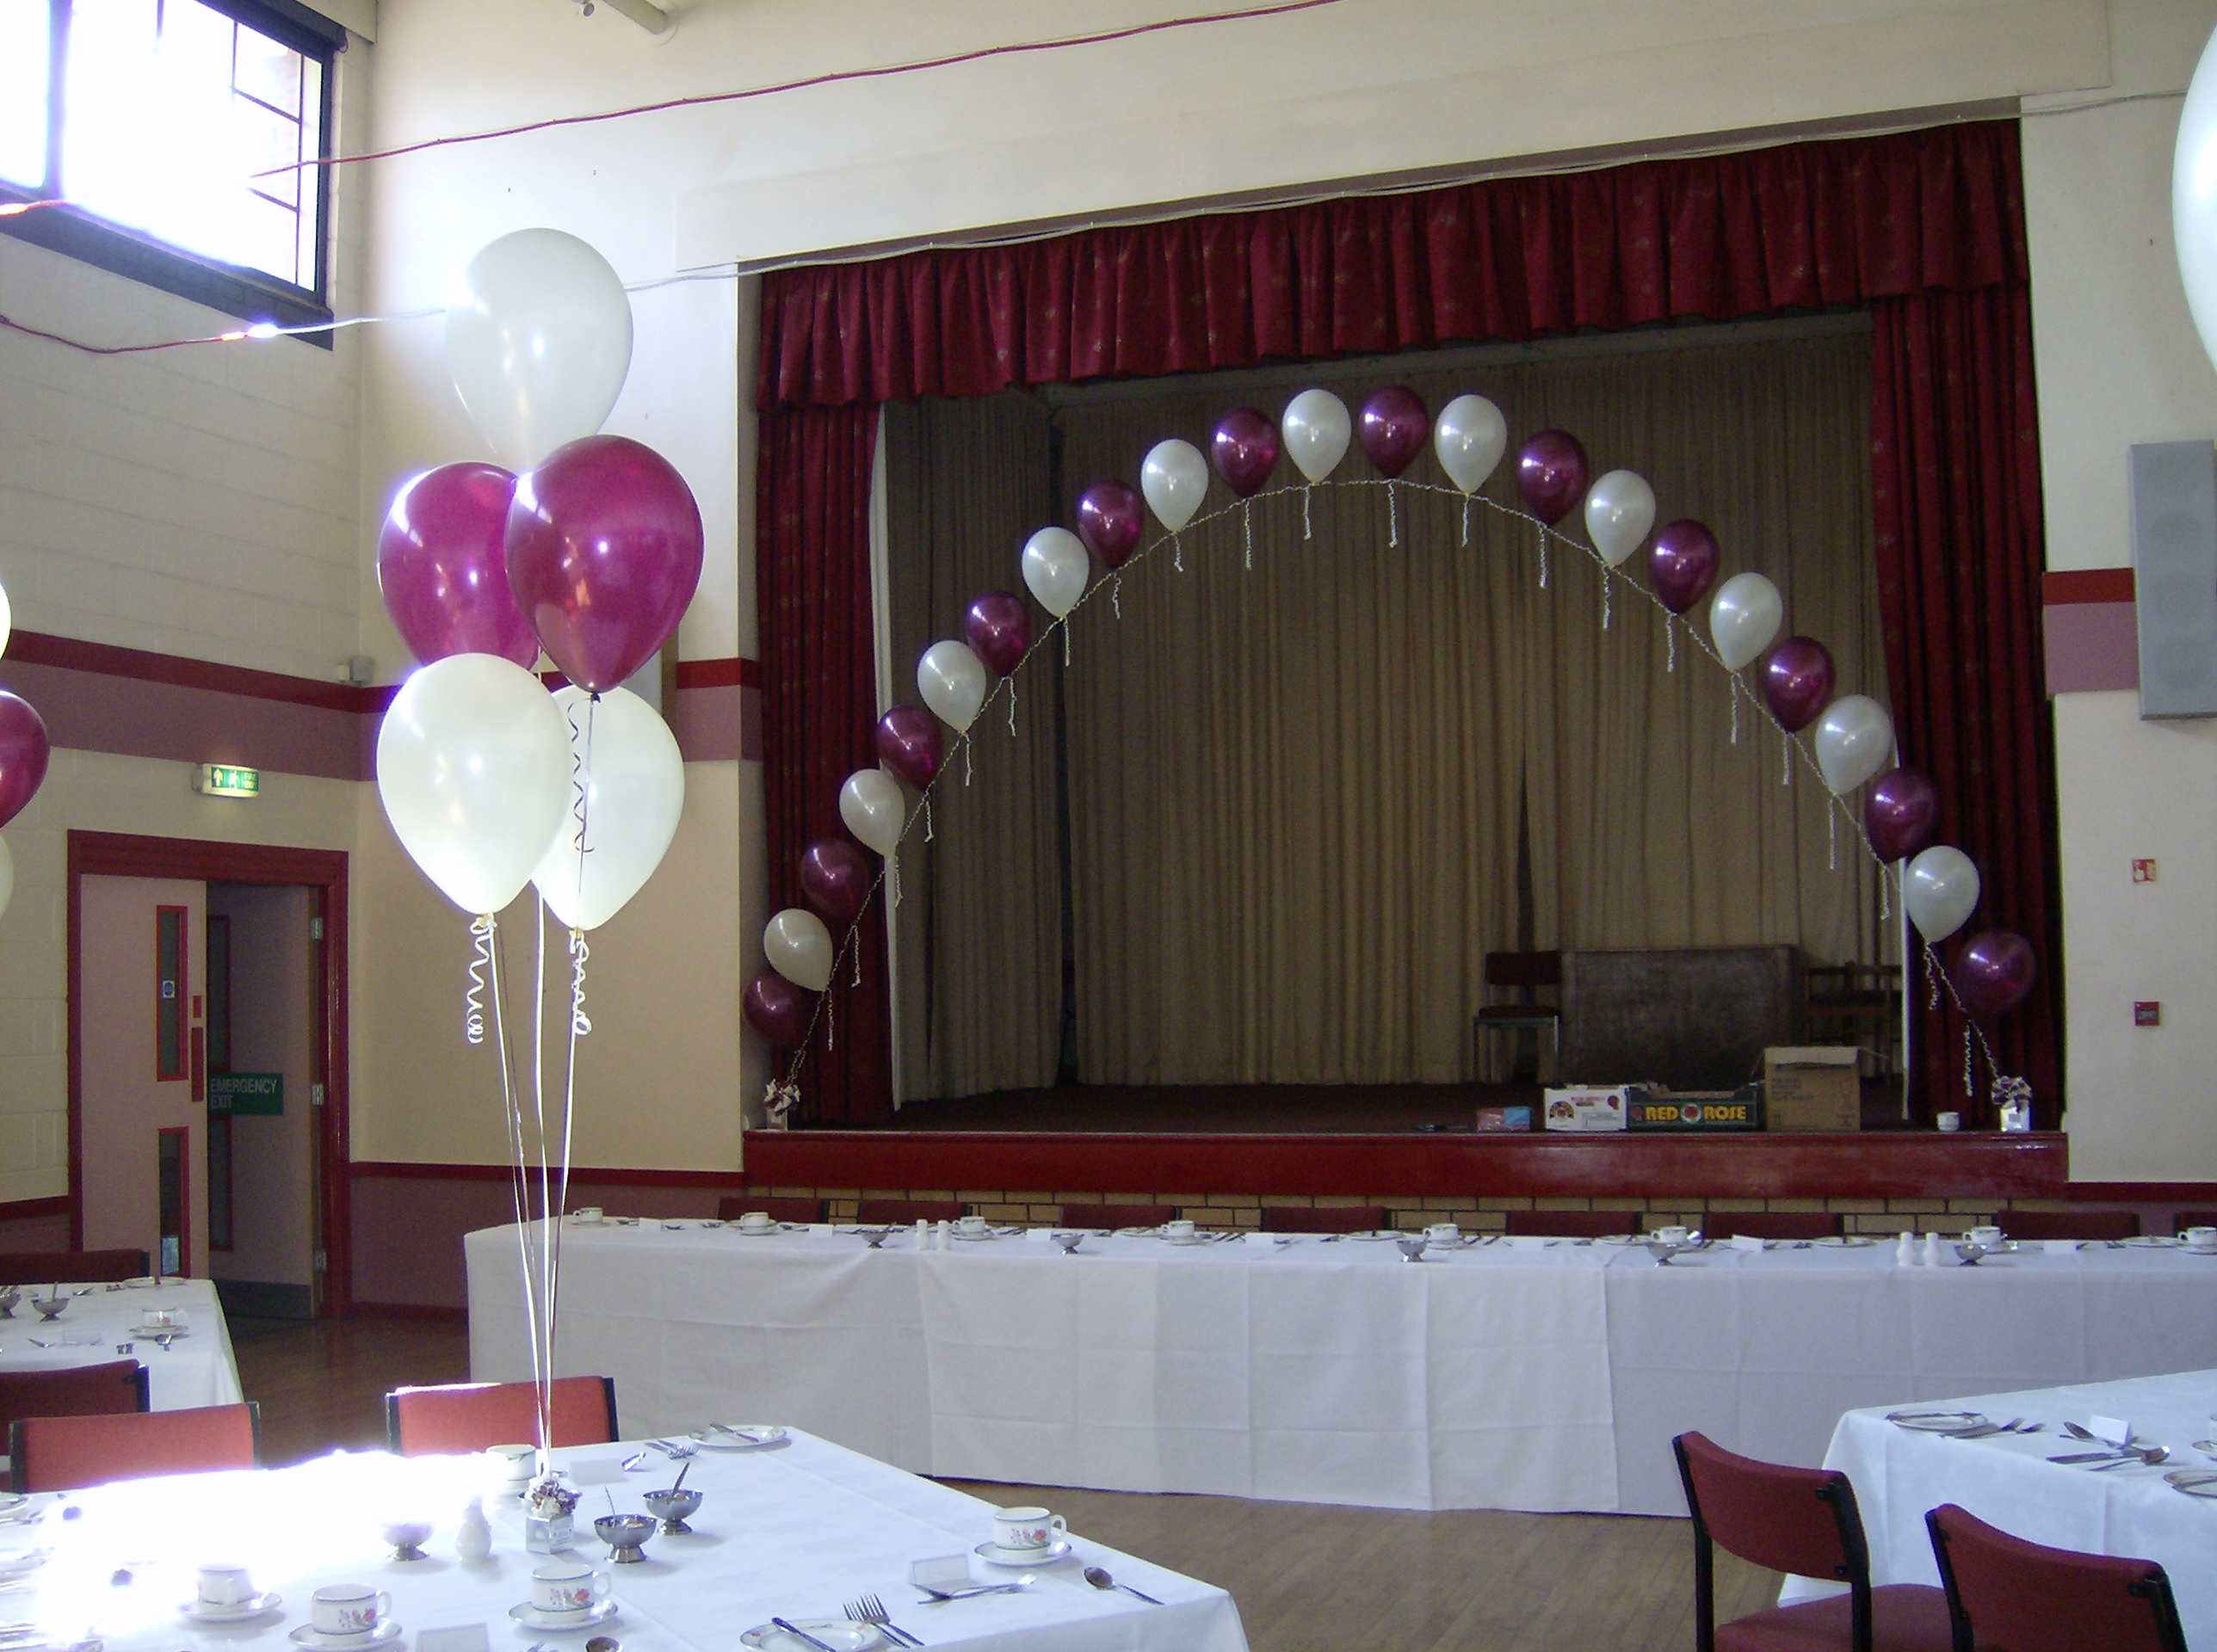 Airs and Graces, AG Balloons, Balloons, Party, Parties,Helium